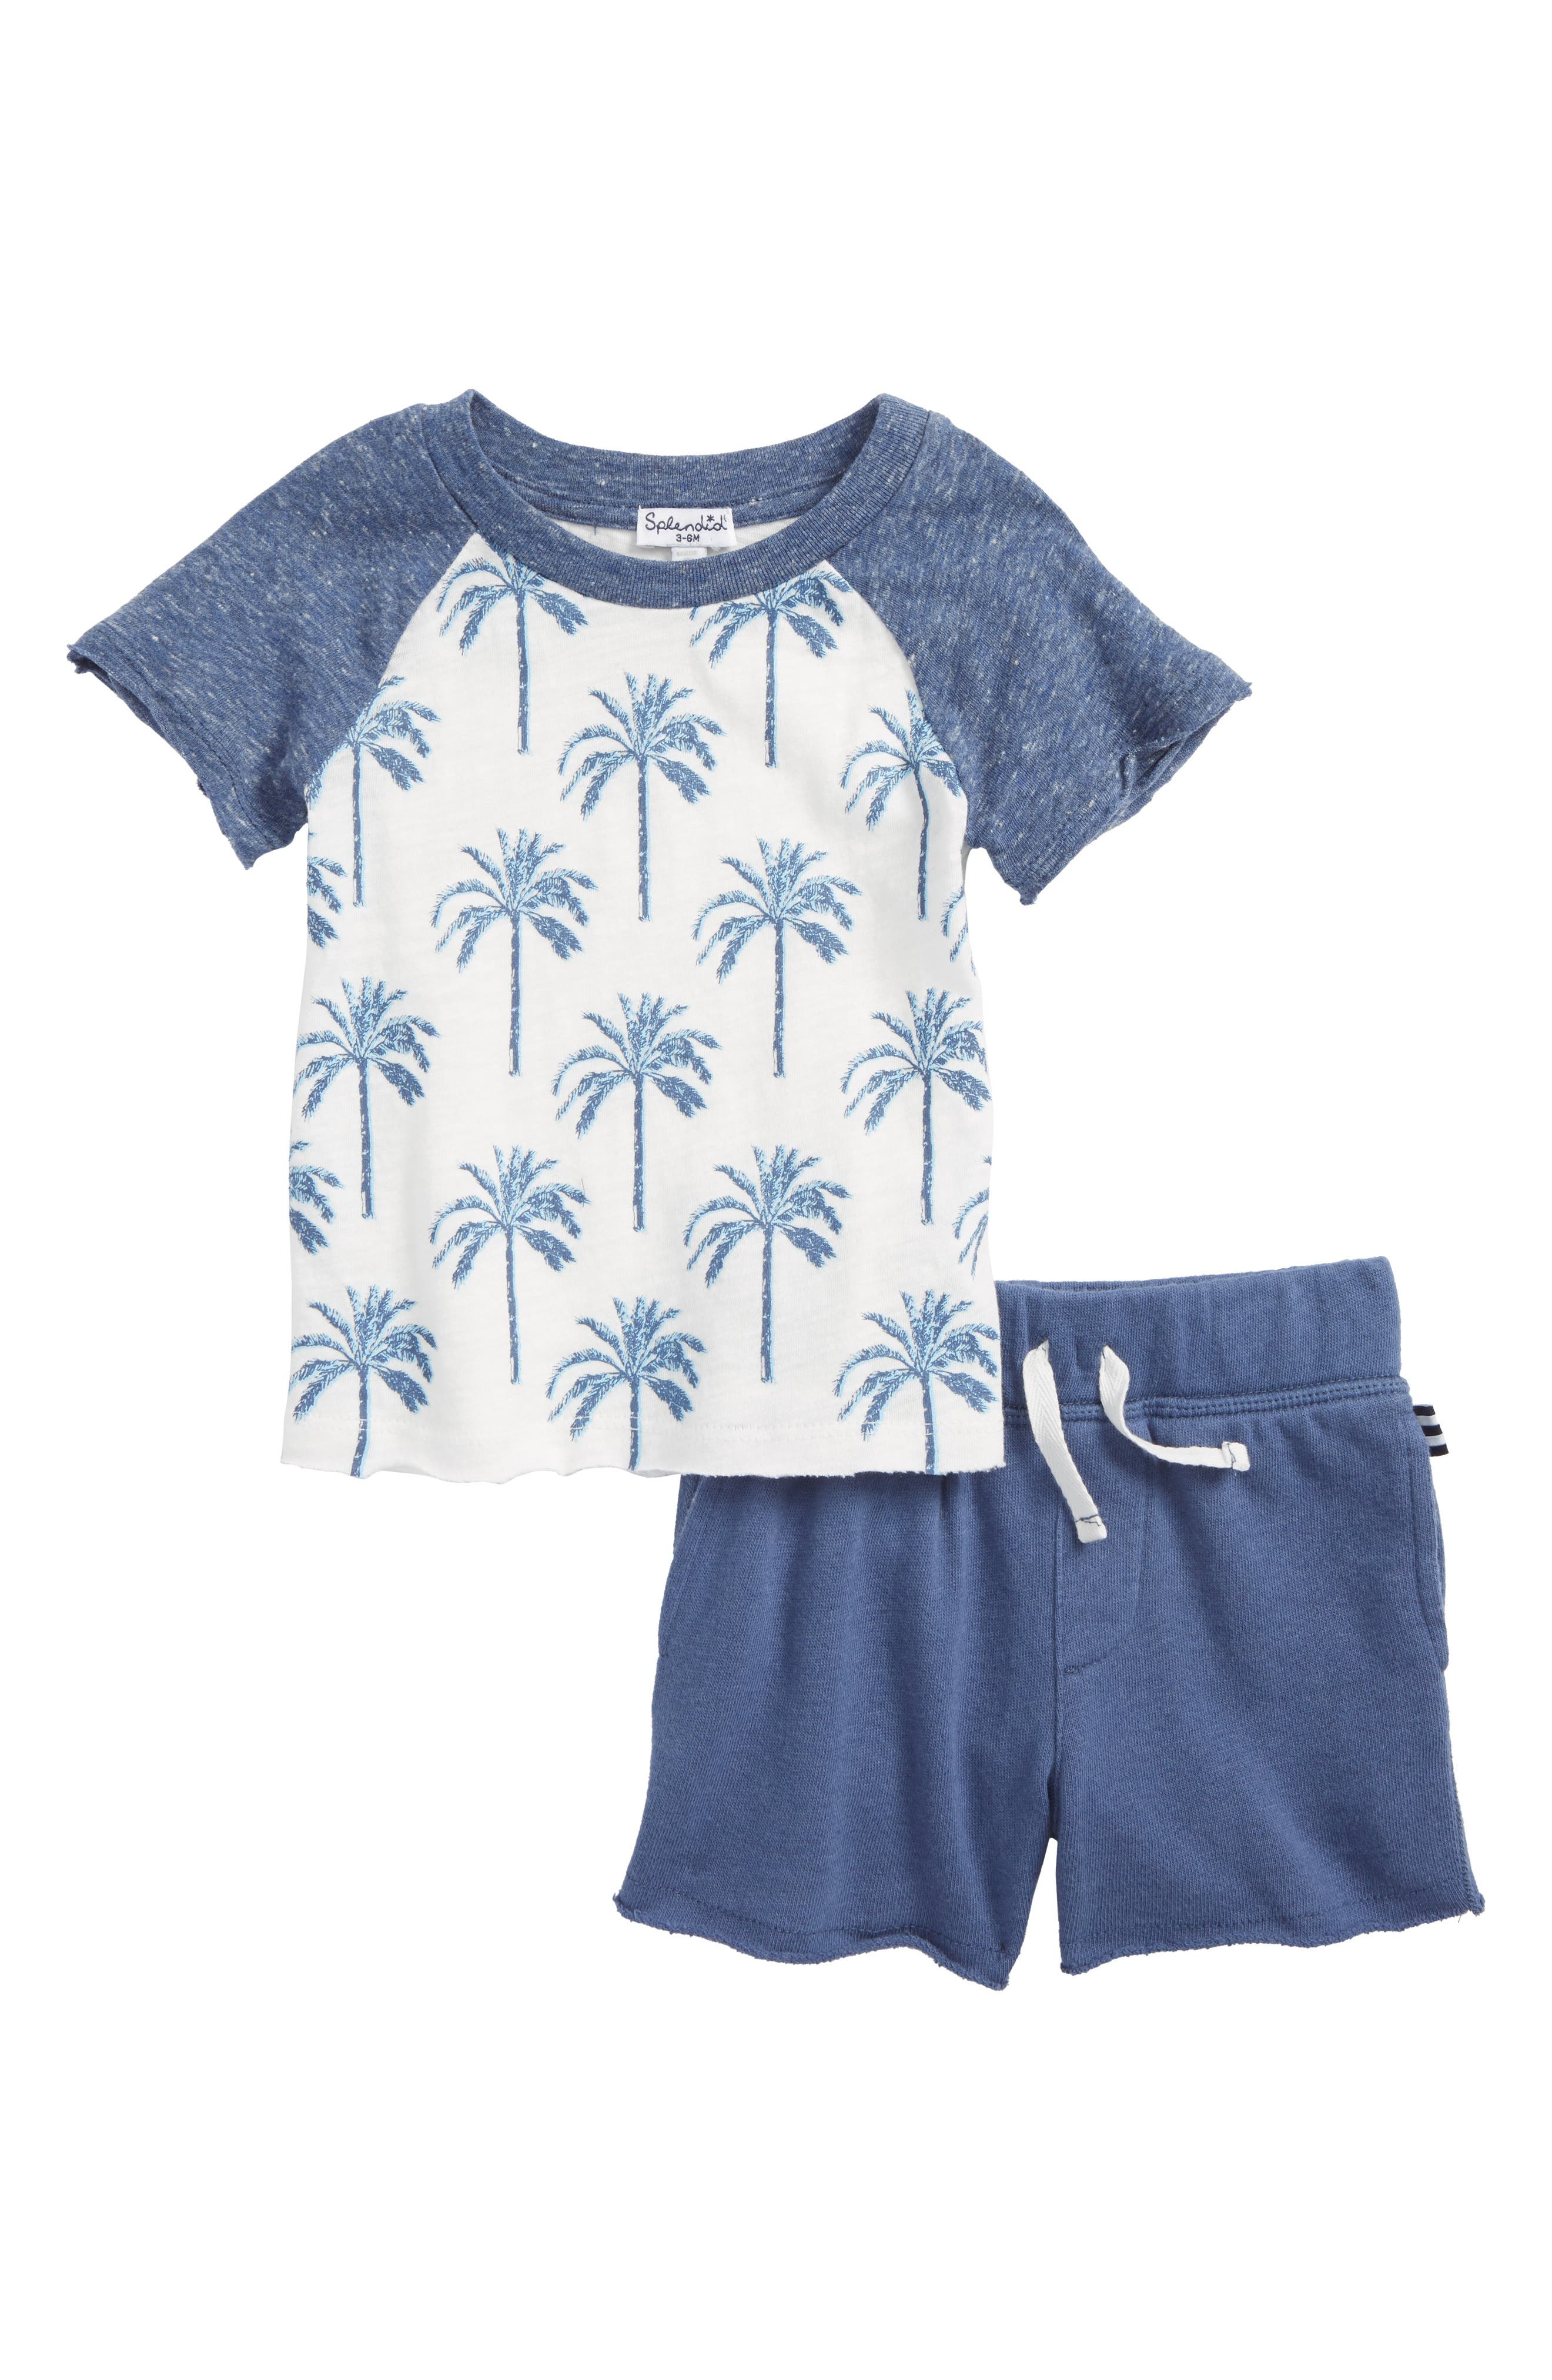 Splendid Palm Print T-Shirt & Shorts Set (Baby)